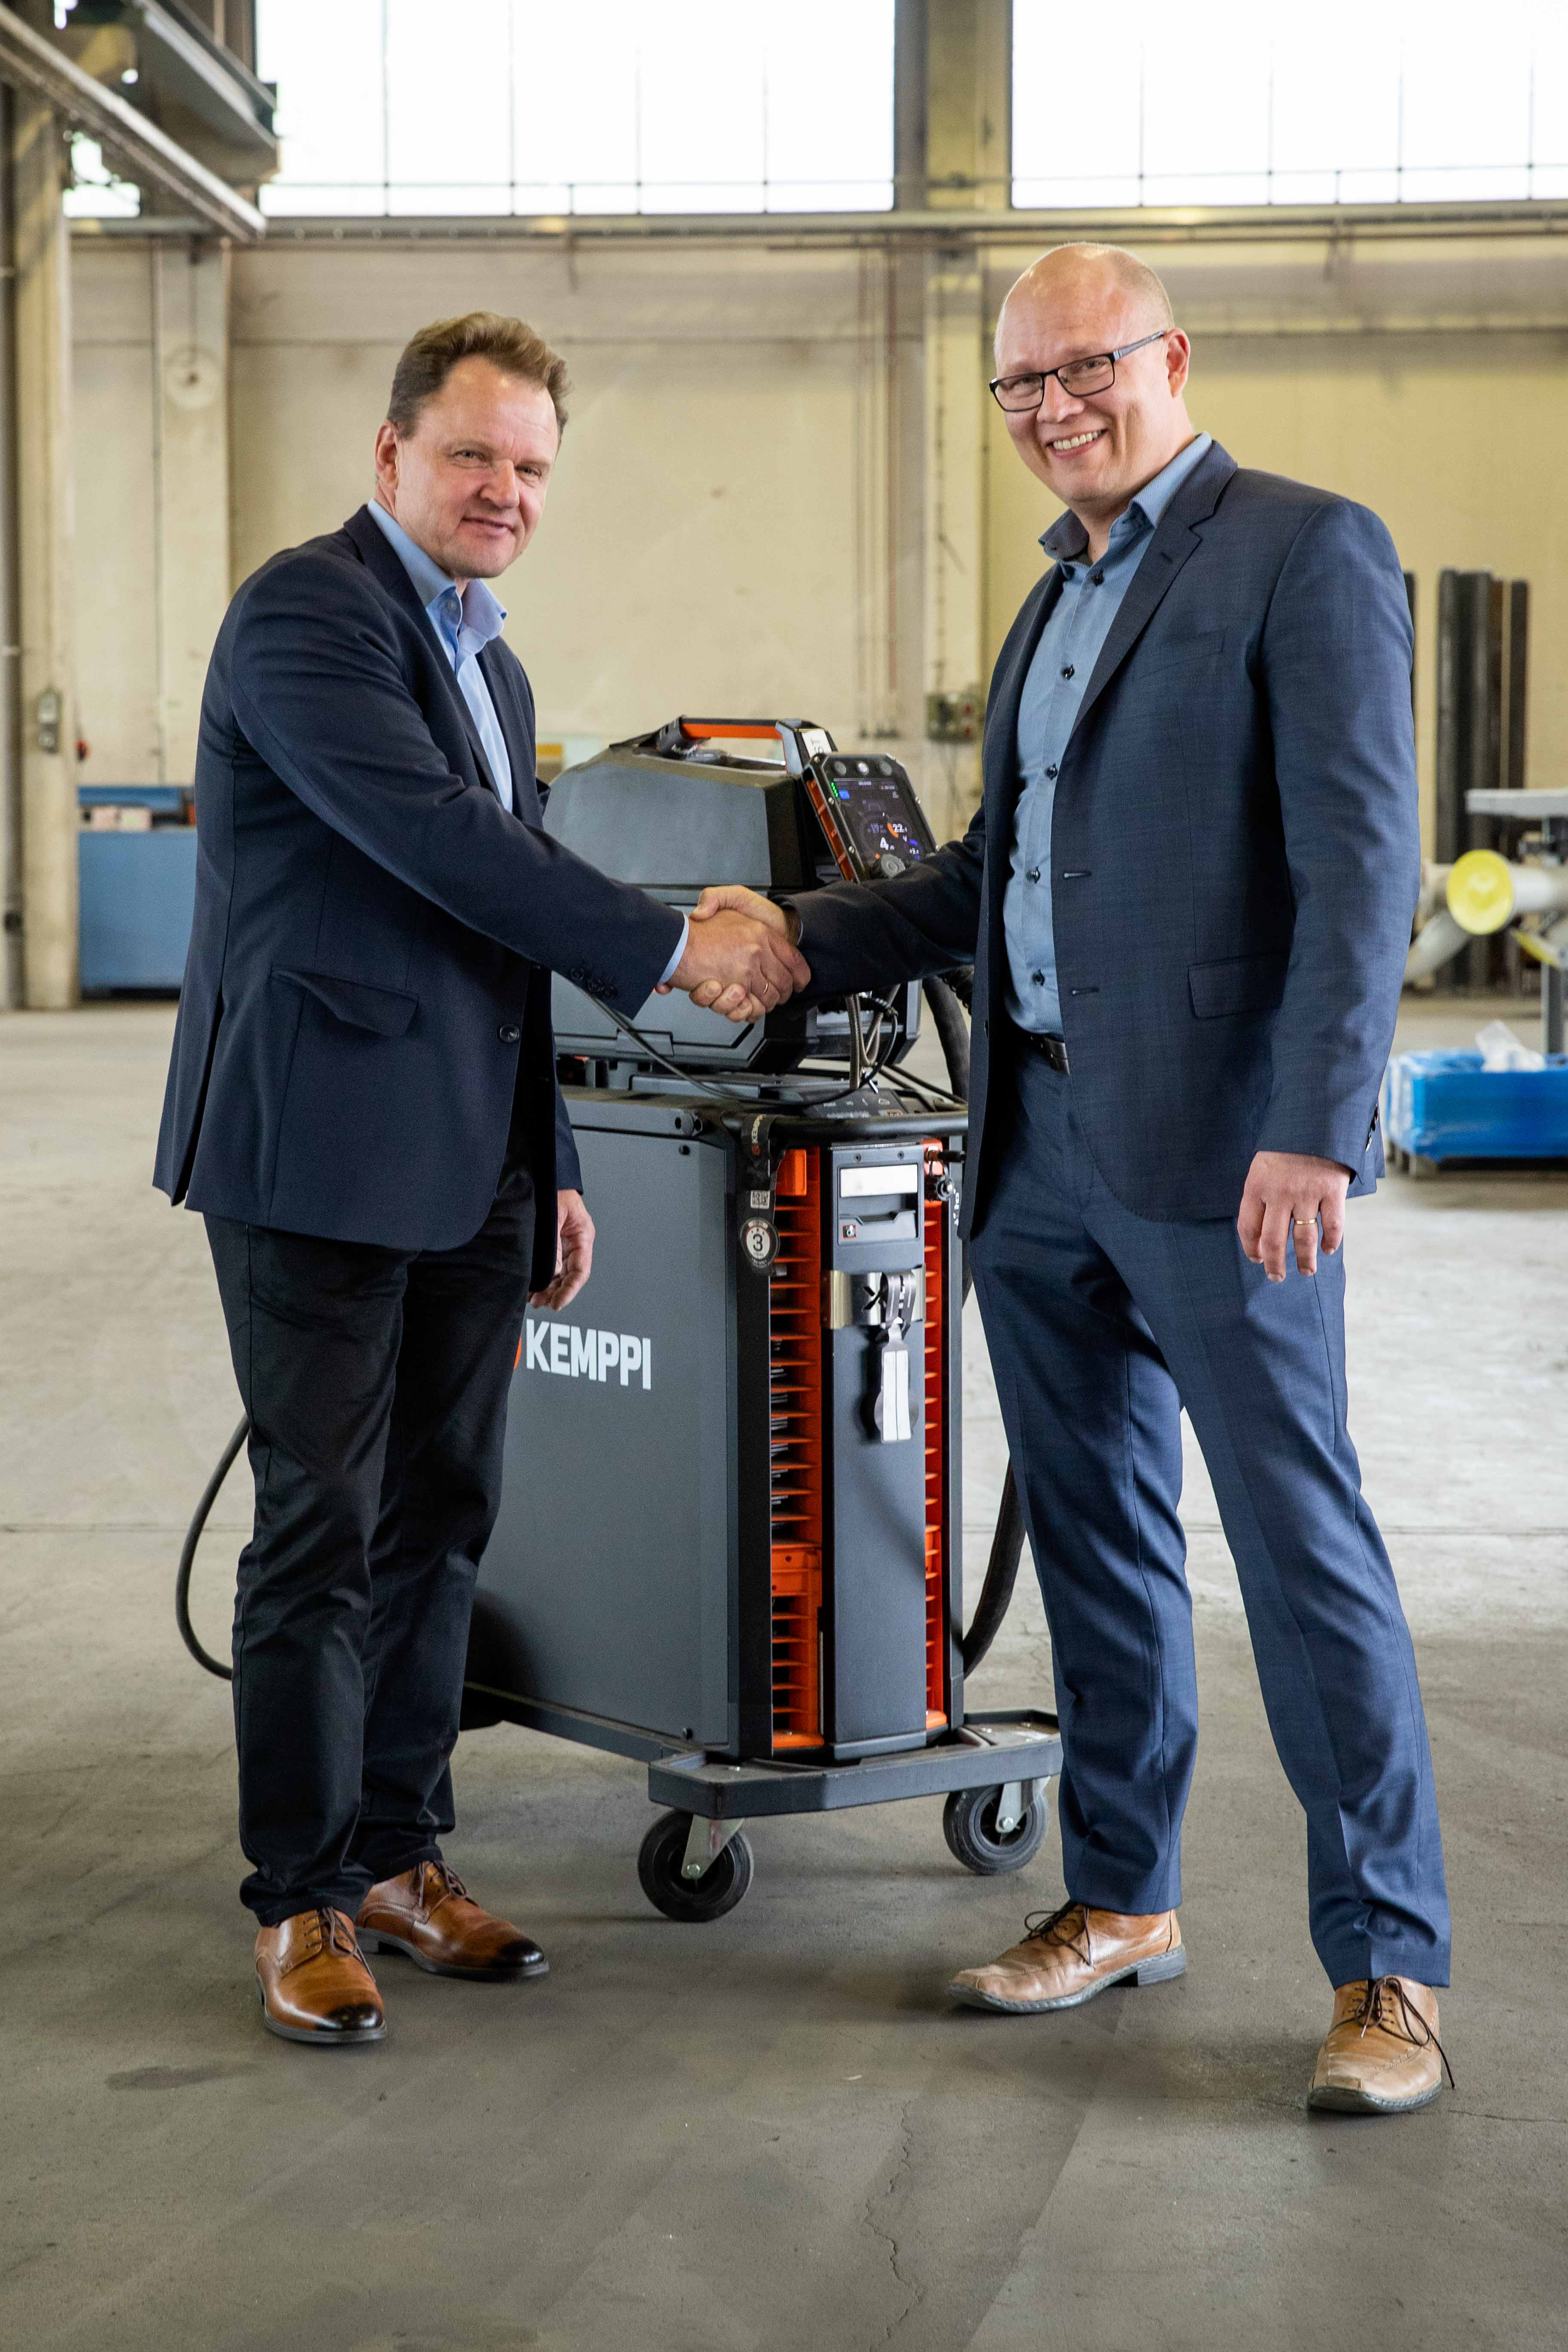 Kemppi's Mikko Väisänen (left) and PipeCloud's Jarno Soinila launch global software cooperation, aiming for the digitalization of welding.